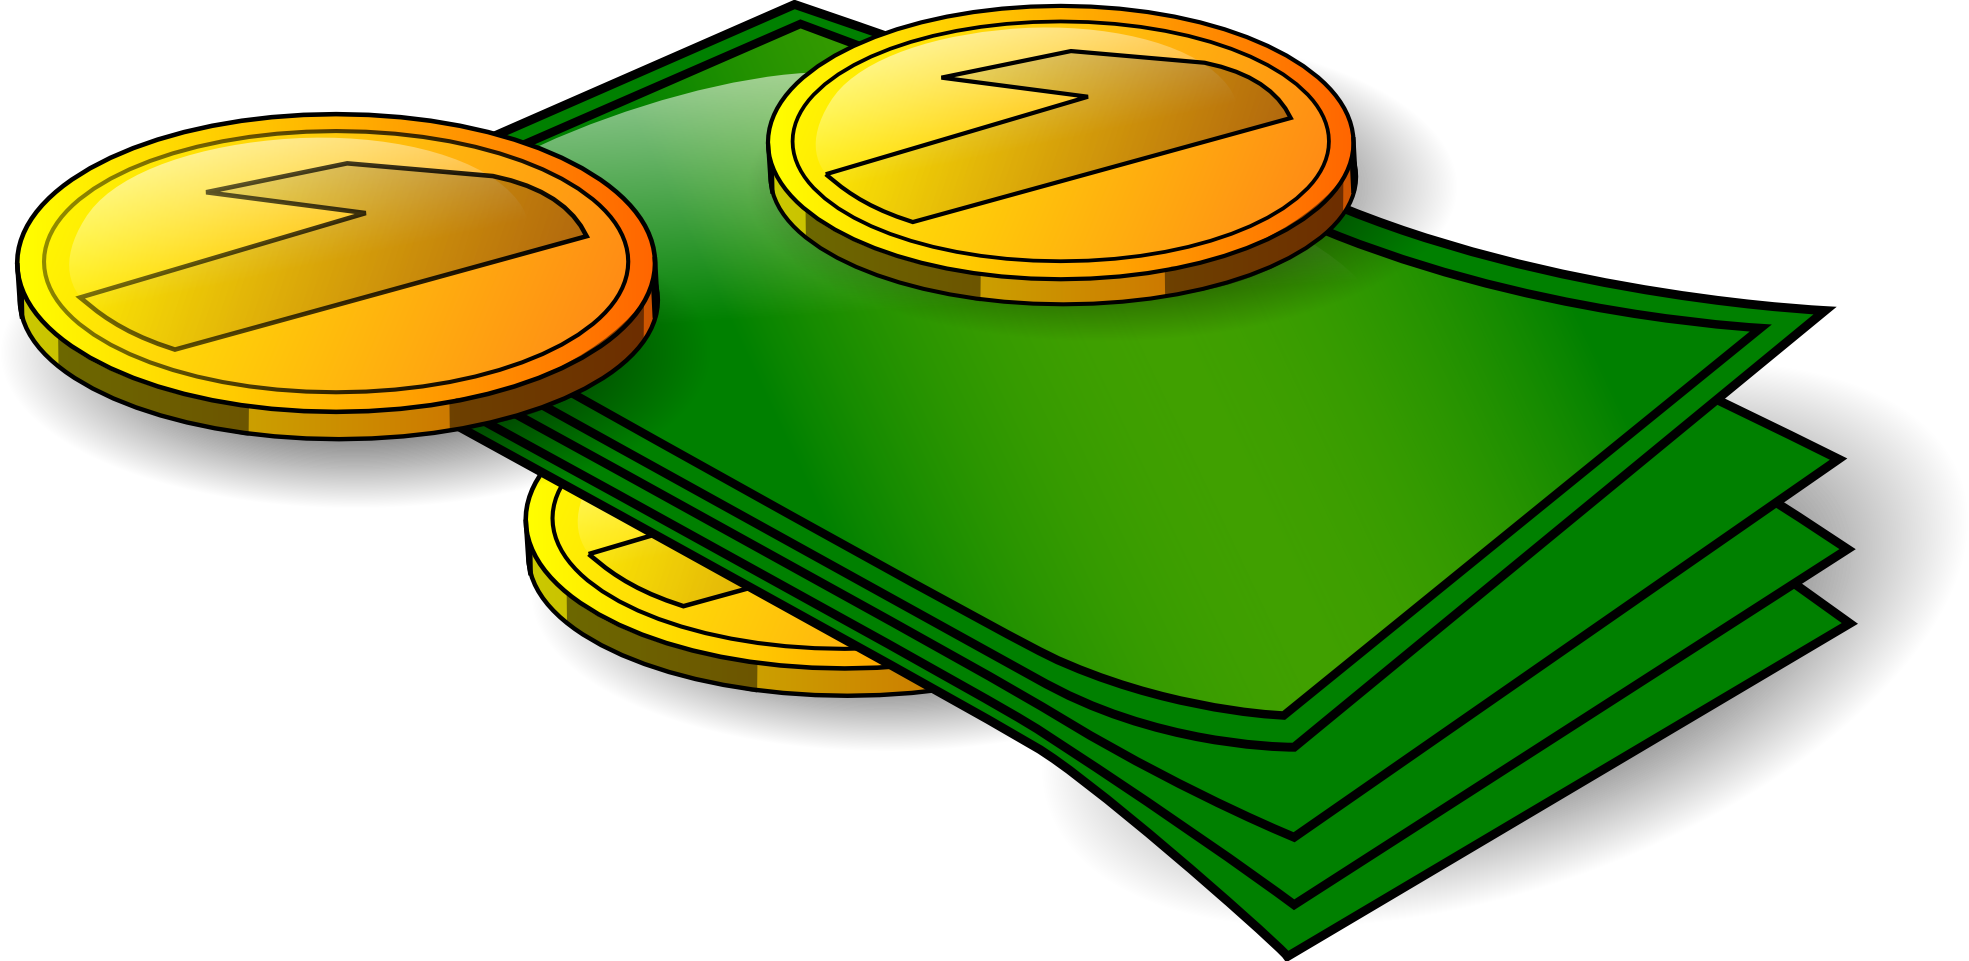 Clipart of money bills picture library stock Pot Of Money Clipart - Clipart Kid picture library stock